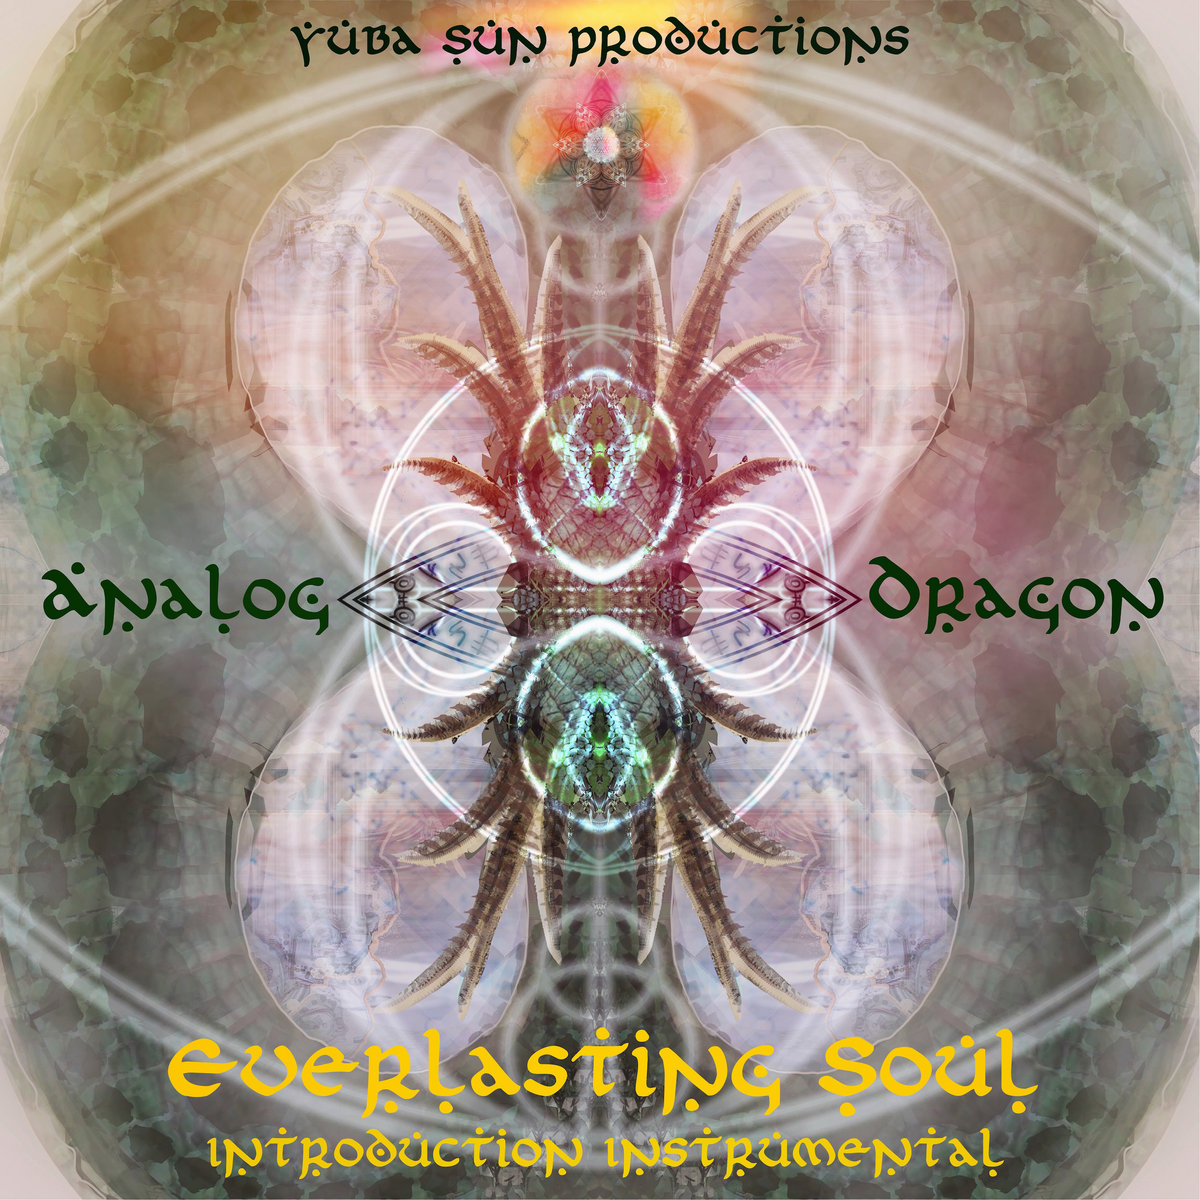 Everlasting Soul Intro (Instrumental) by Analog Dragon